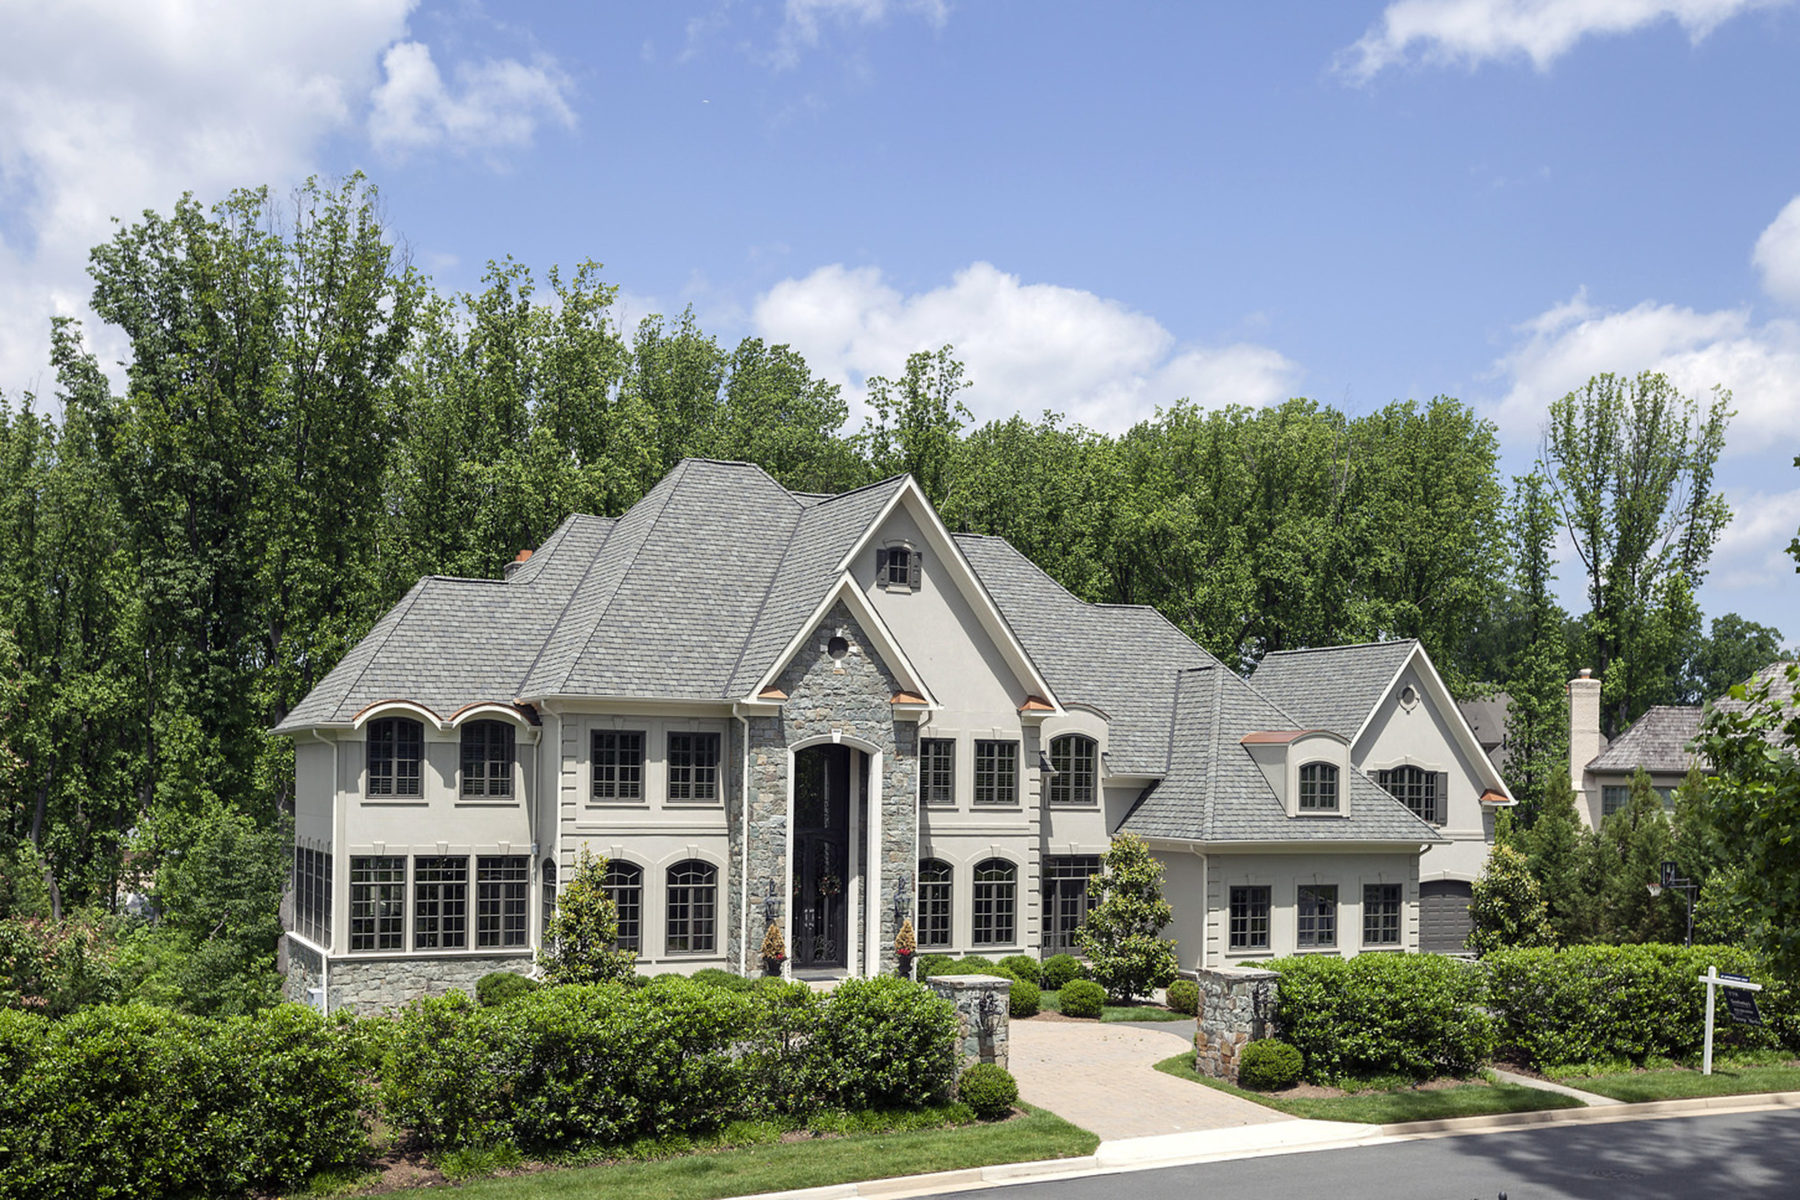 Villa per Vendita alle ore 1026 Founders Ridge Lane, Mclean 1026 Founders Ridge Ln McLean, Virginia, 22102 Stati Uniti